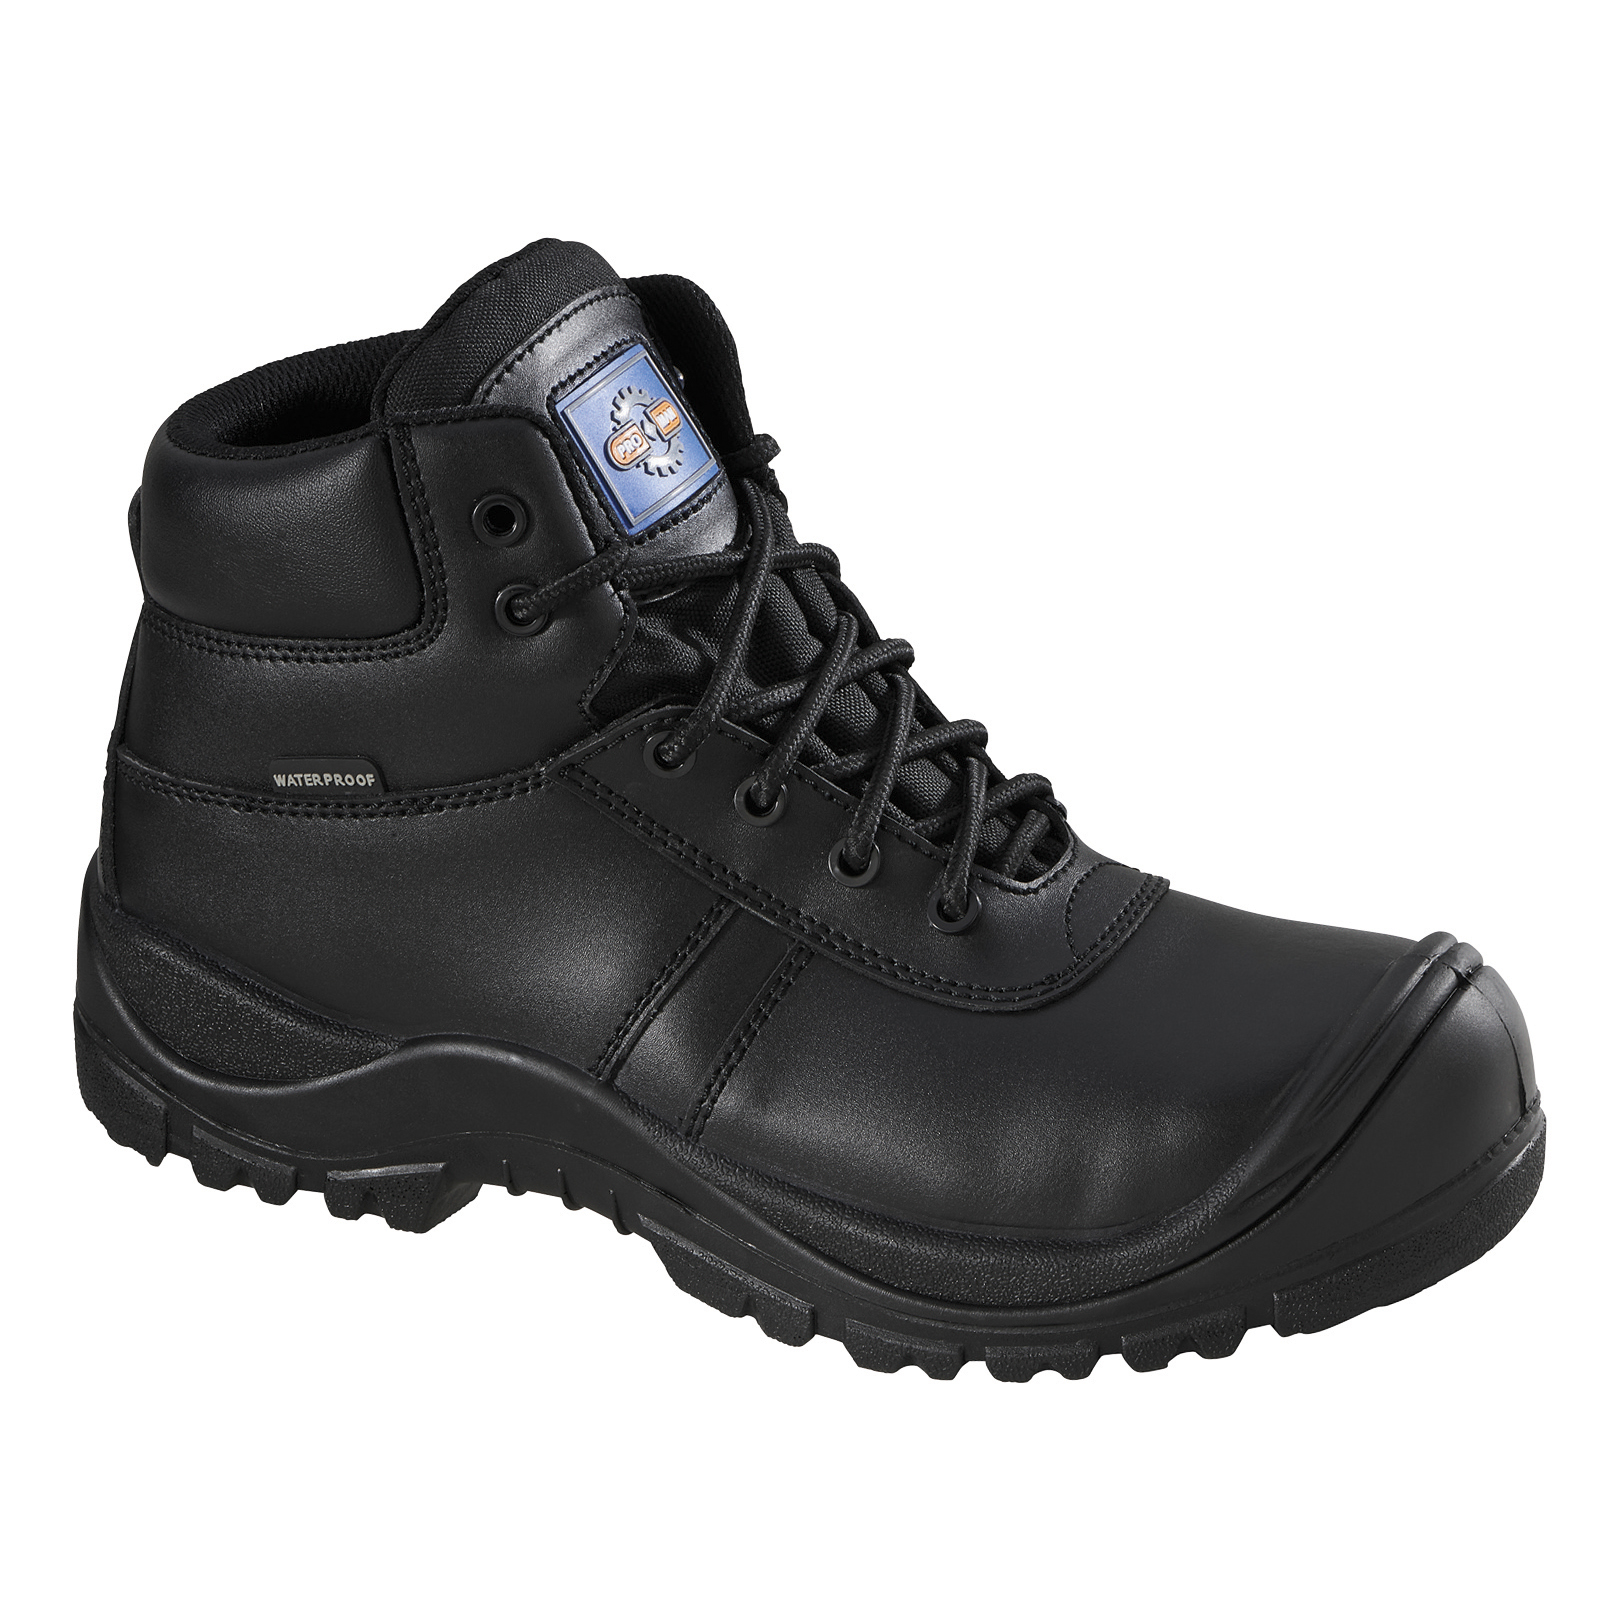 Rockfall Proman Boot Leather Waterproof 100% Non-Metallic Size 8 Black Ref PM4008-8 *5-7 Day Leadtime*